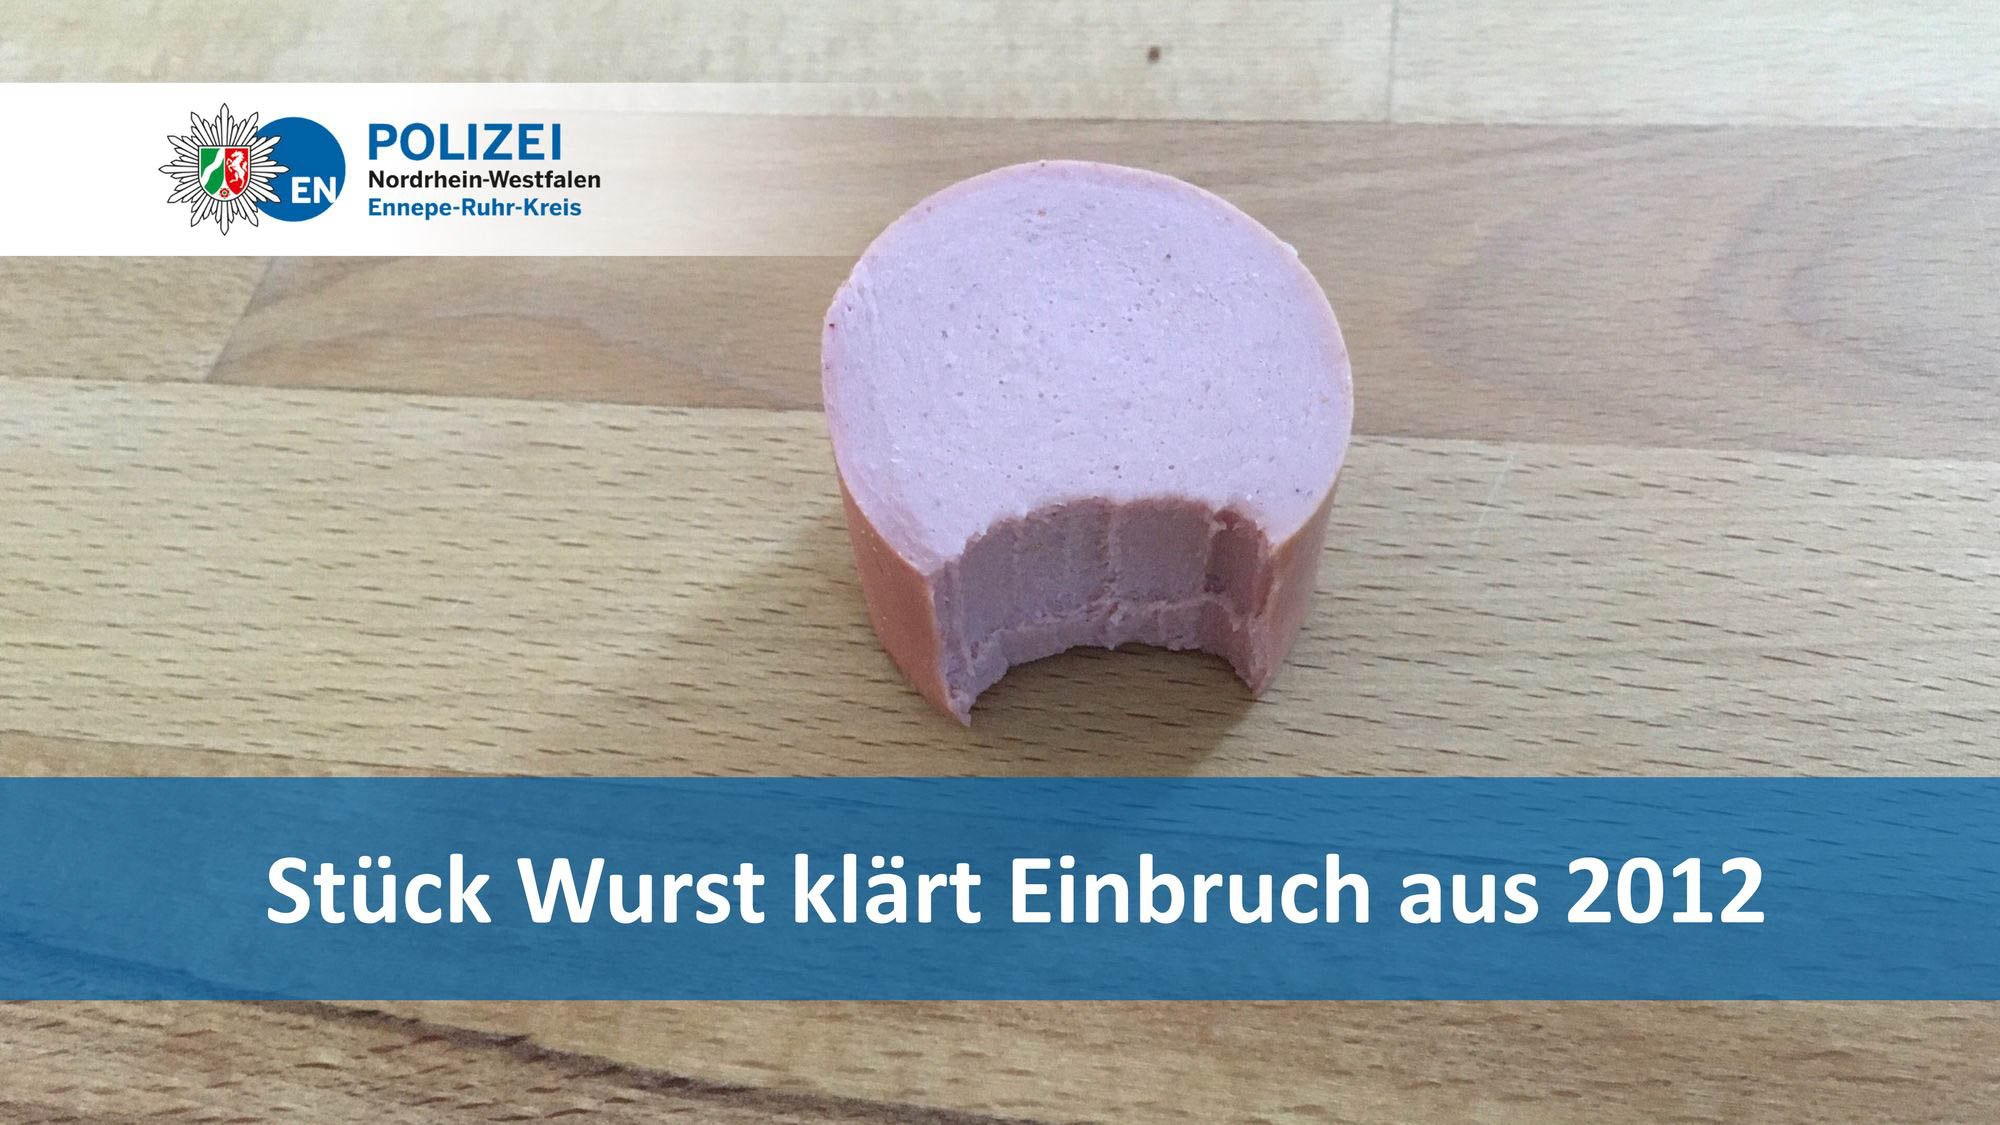 Wurst with a bite taken out